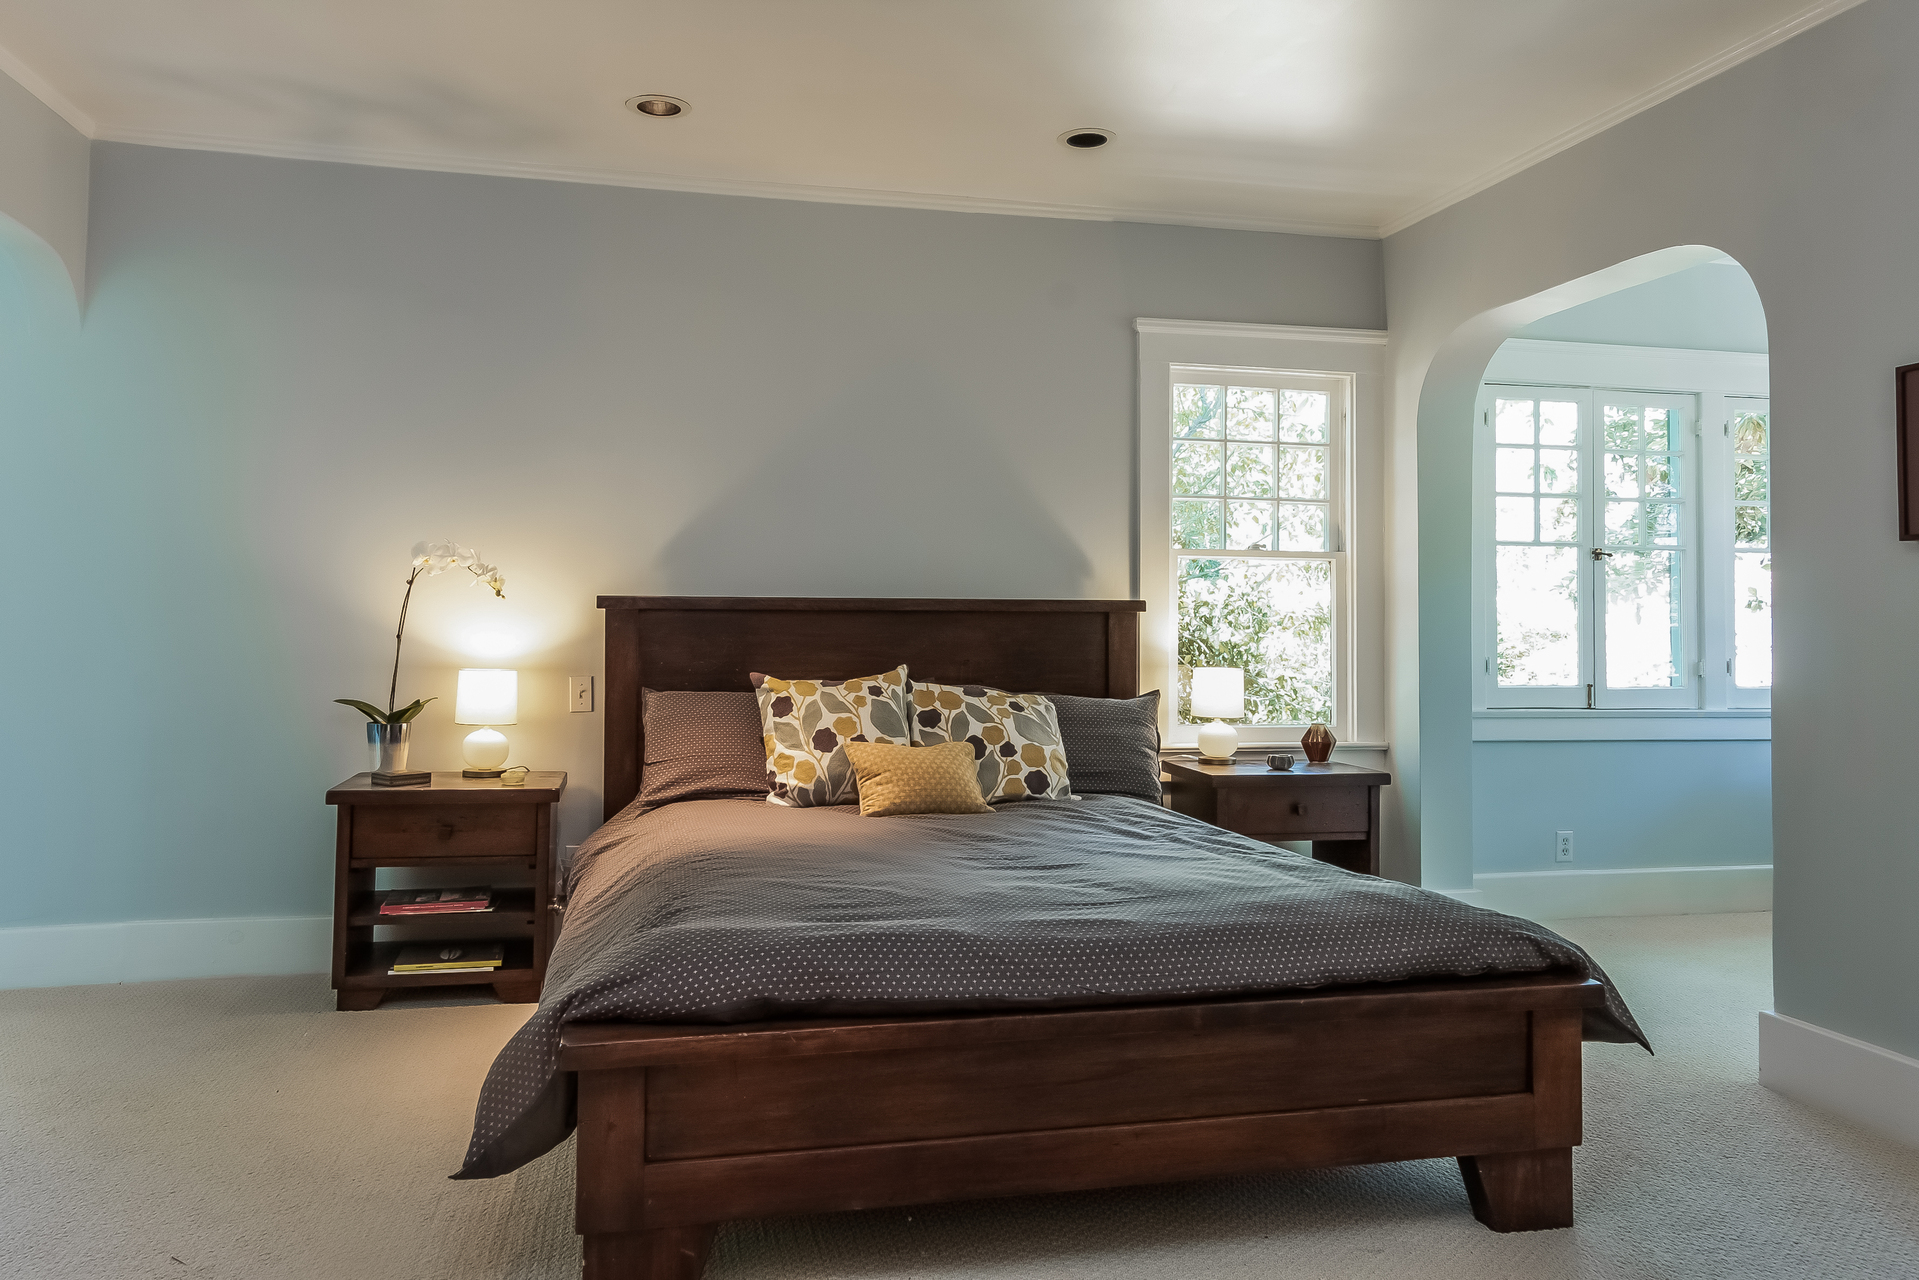 028-Master_Bedroom-1926910-medium.jpg